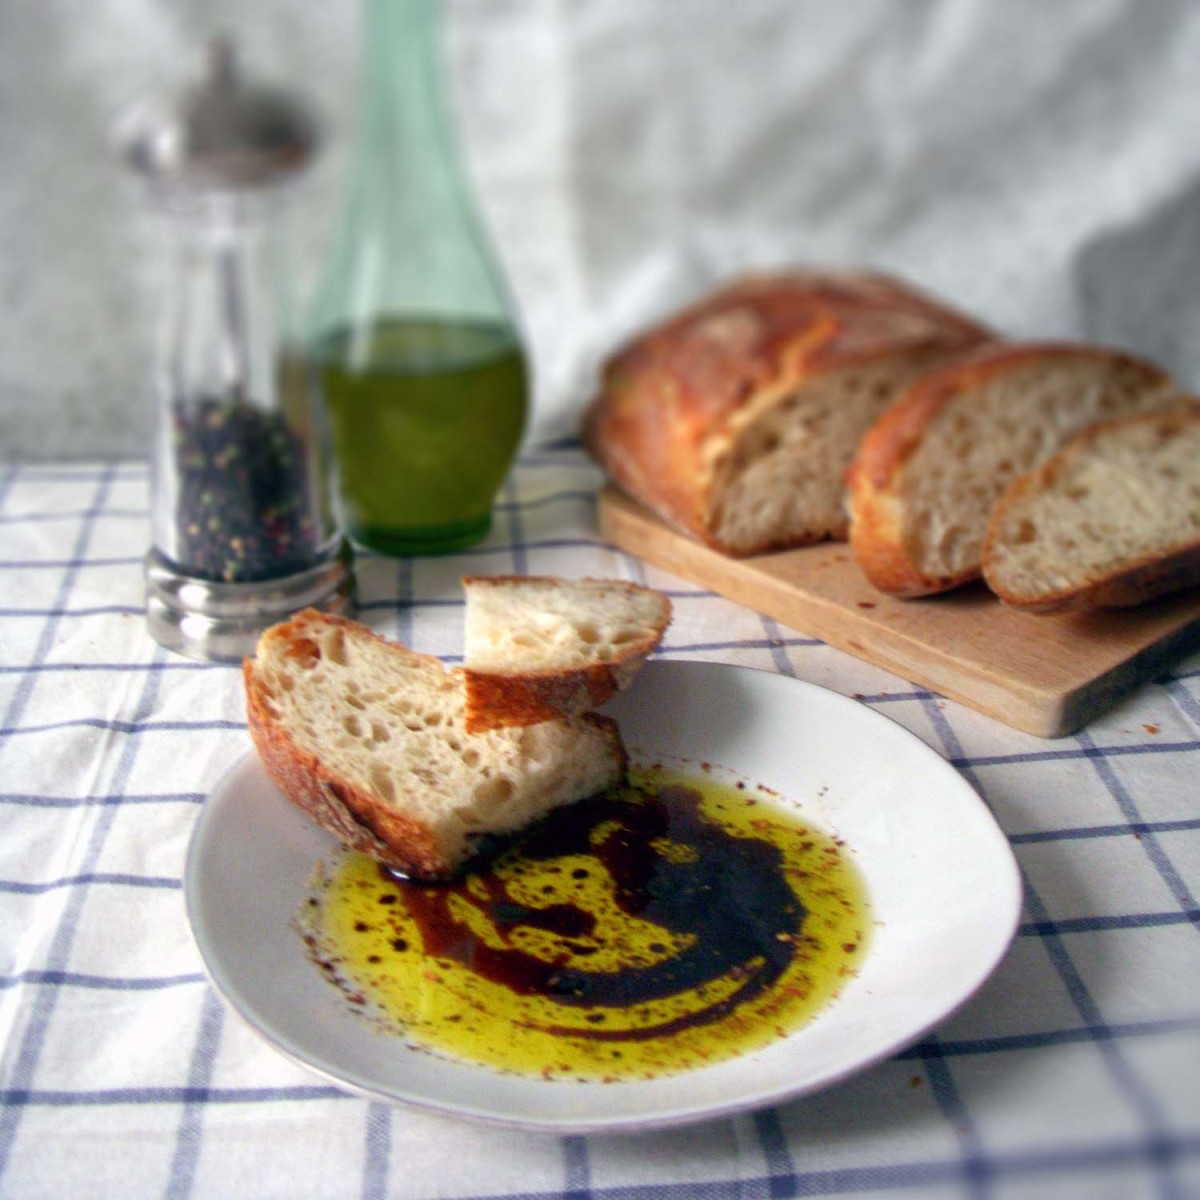 The Hangover (Cure): Bread + Balsamic + Olive Oil = Instant Hangover Prevention